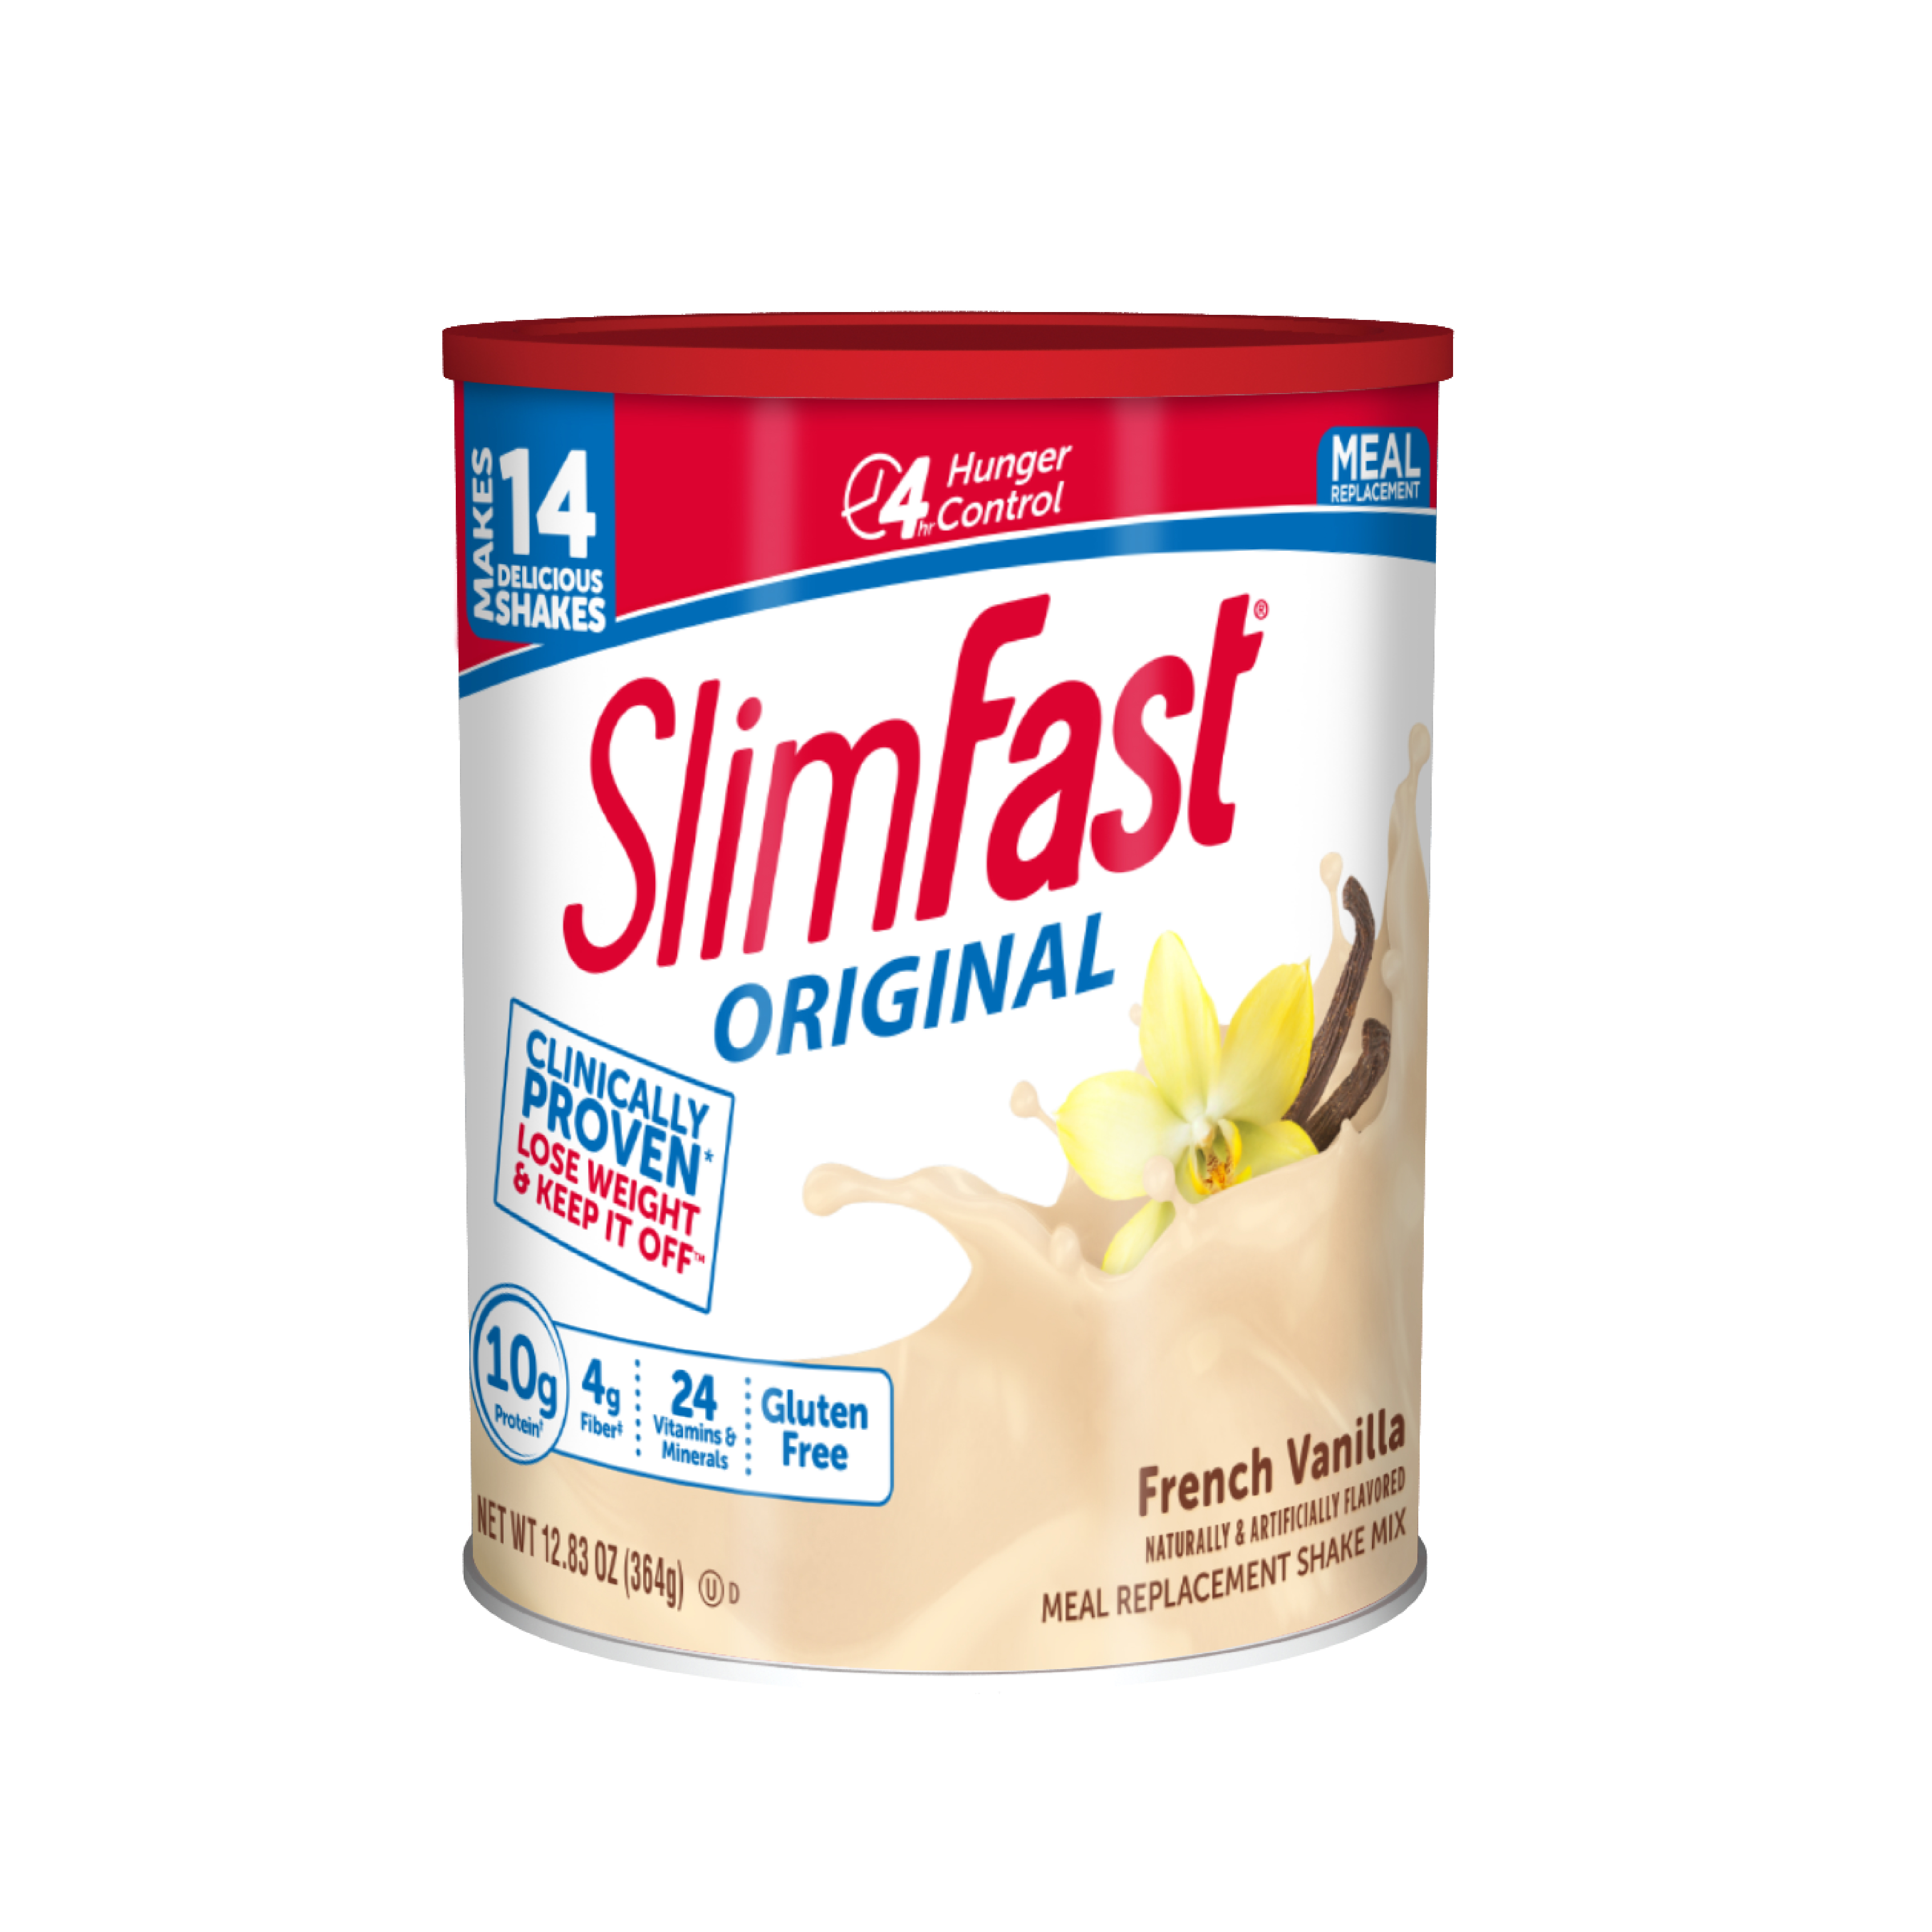 SlimFast Original Meal Replacement Shake Mix Powder, French Vanilla, 12.83oz, 14 servings